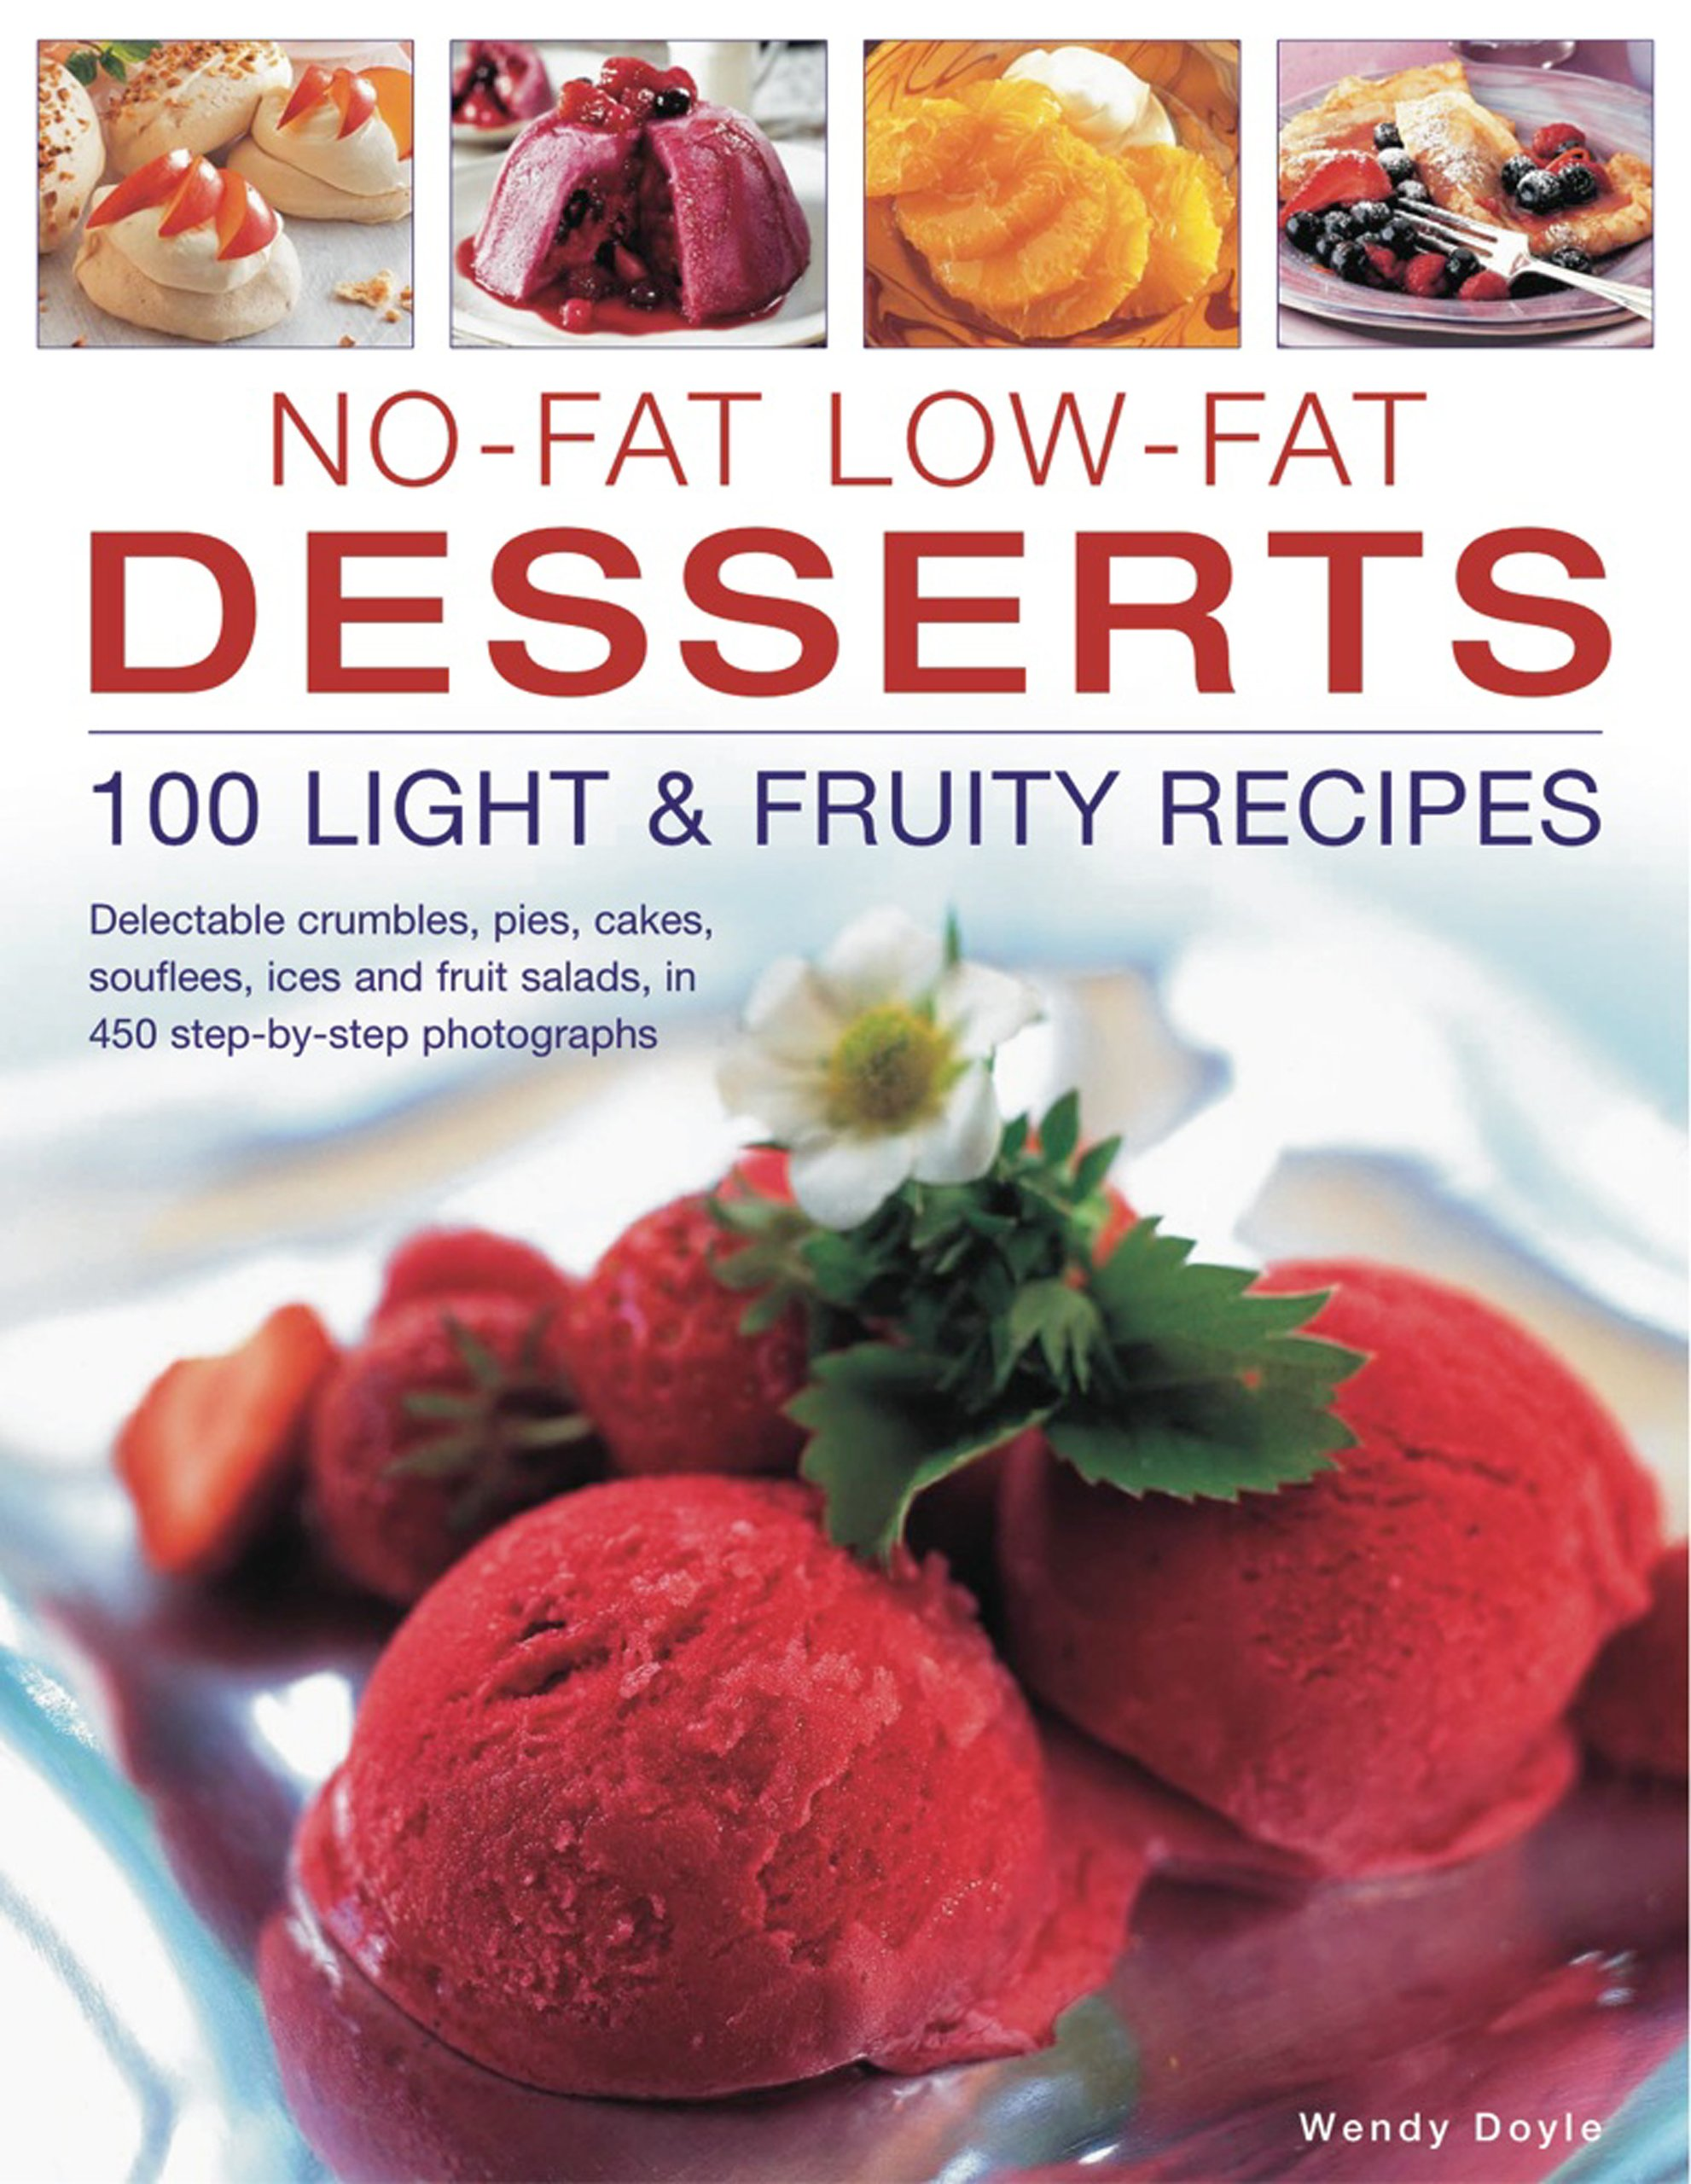 Download No-Fat Low-Fat Desserts: 100 Light & Fruity Recipes: Delectable crumbles, pies, cakes, souflees, ice and fruit salads, in 450 step-by-step photographs ebook